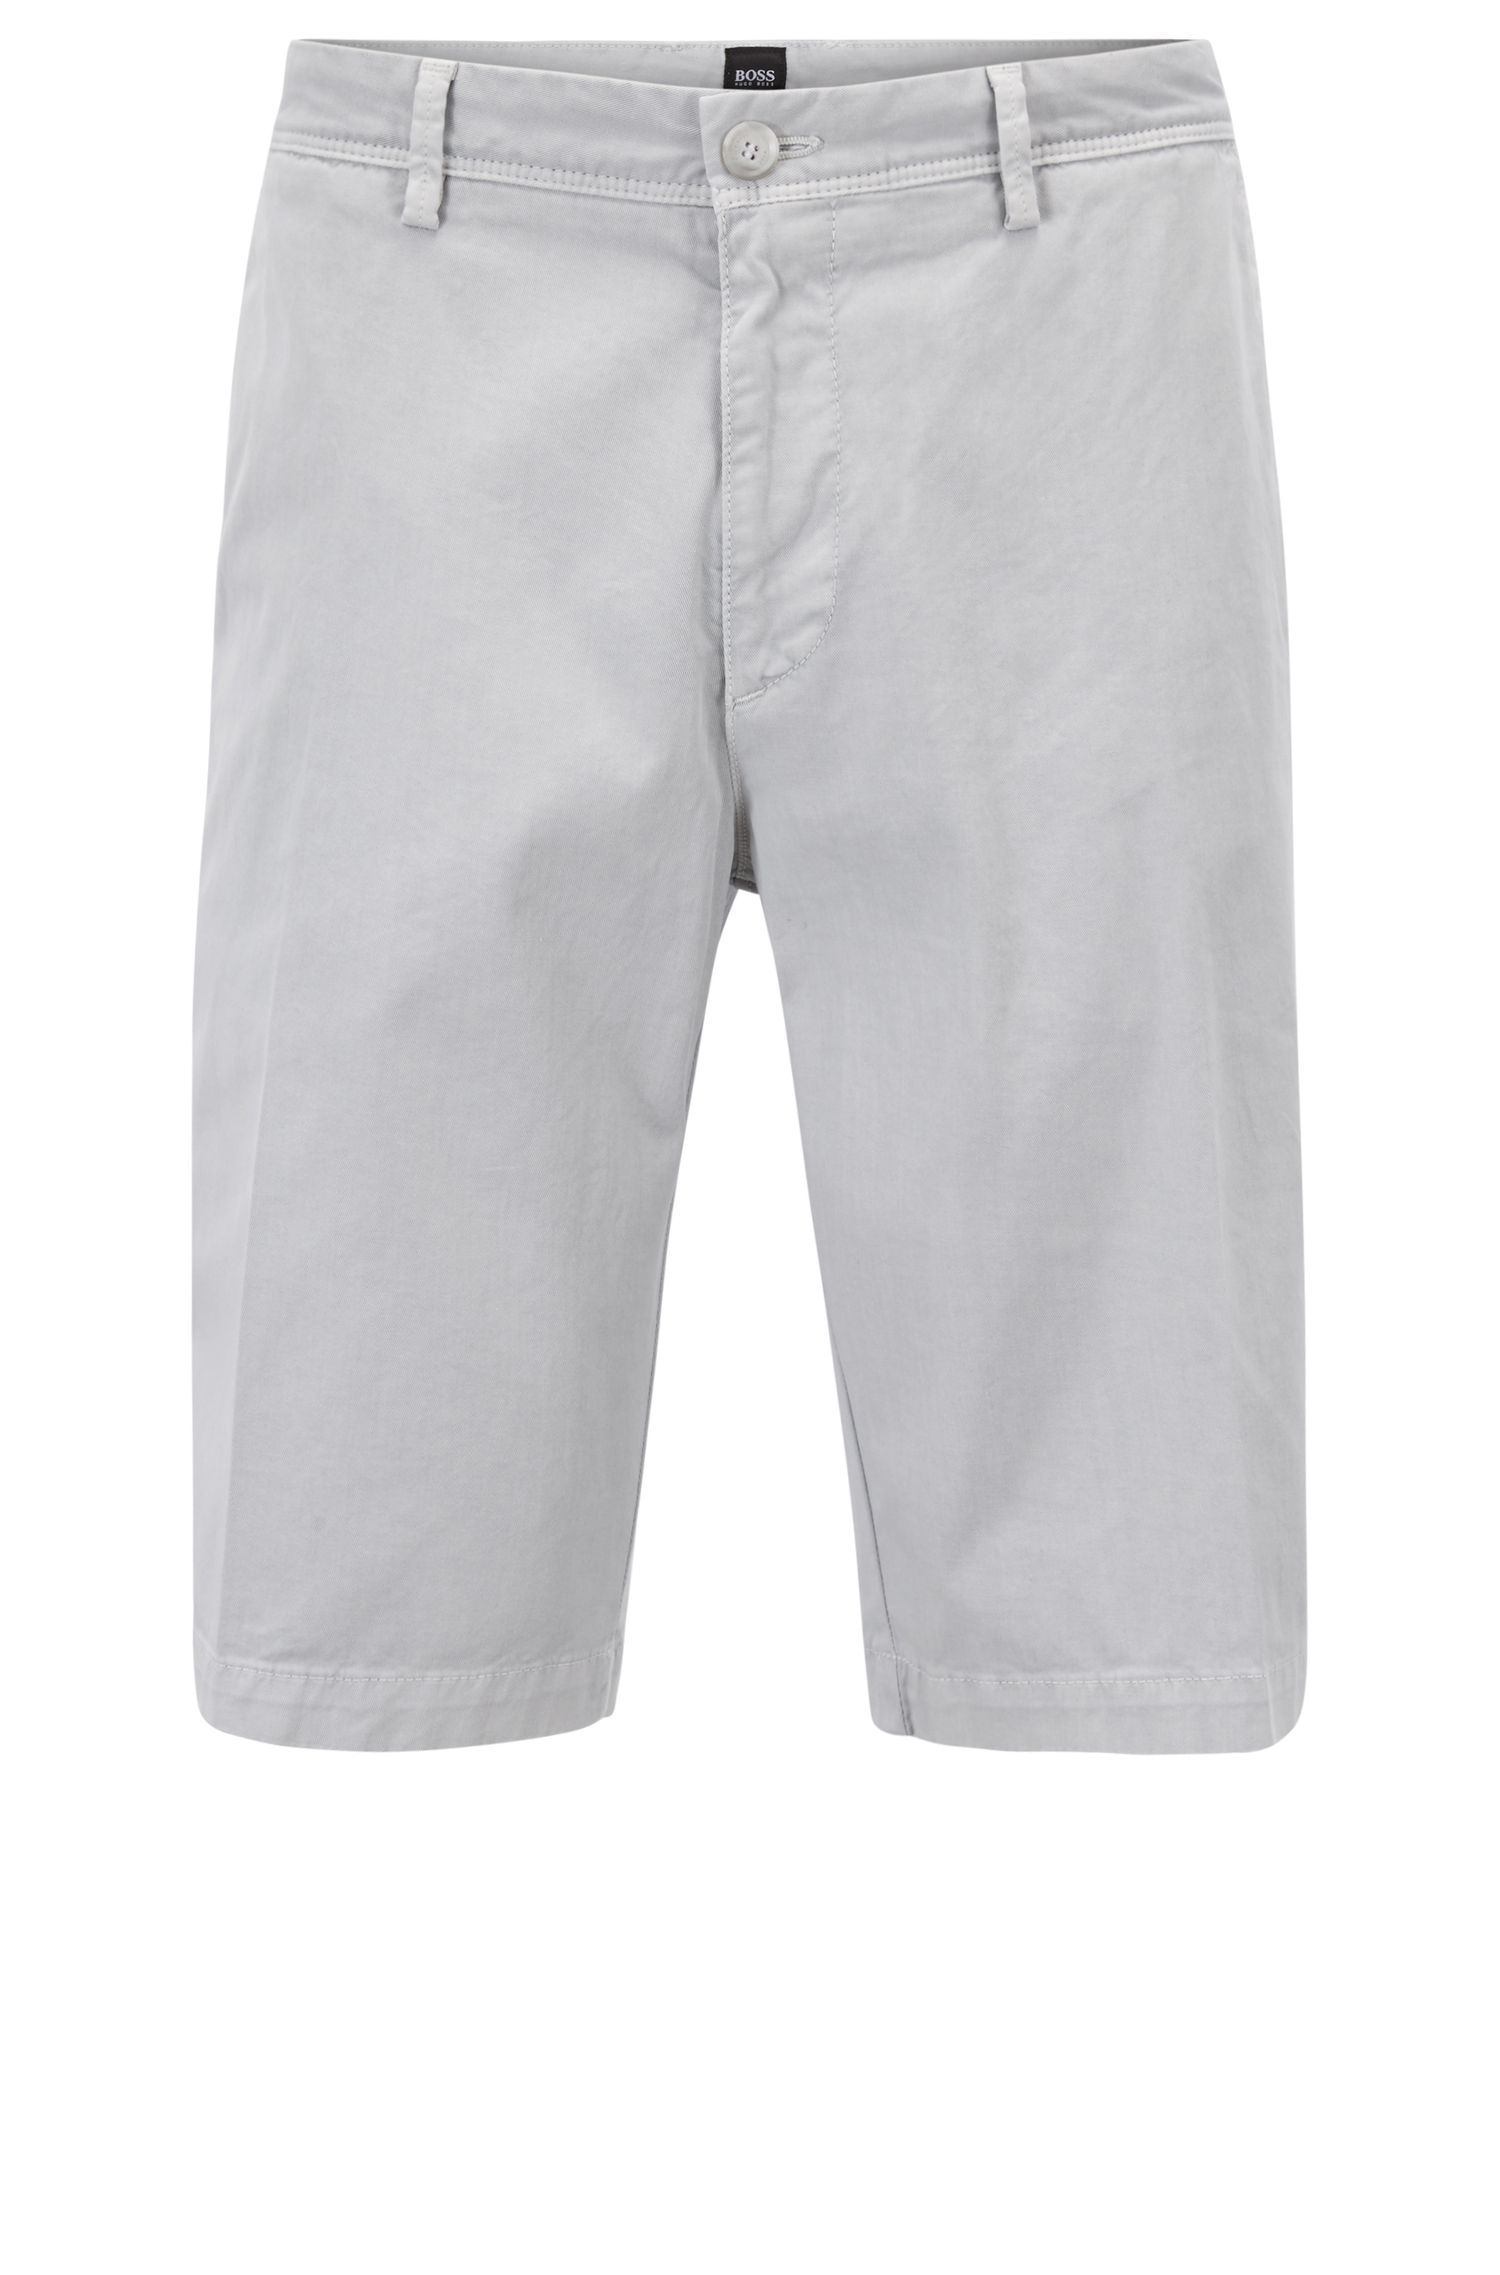 Pigmentgefärbte Regular-Fit Chino-Shorts